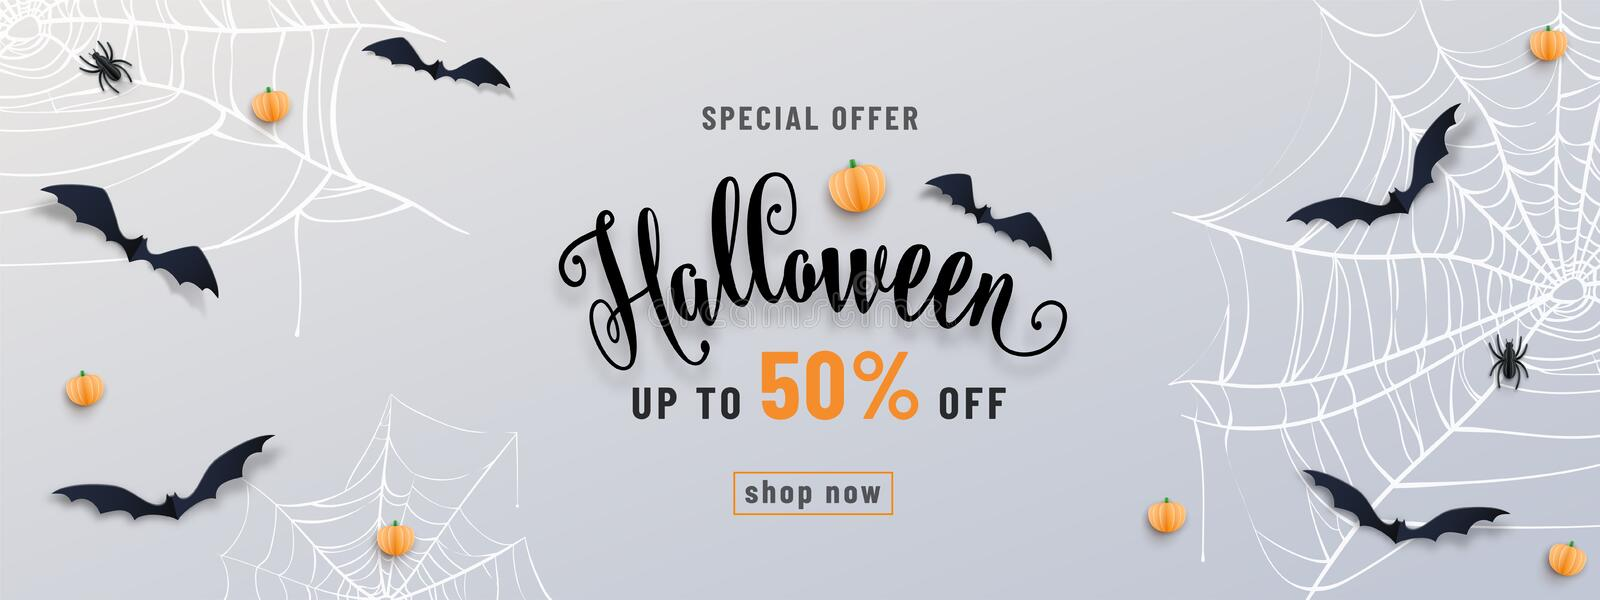 Halloween sale banner, party invitation concept background. Holiday design with bats, spider, cobweb, pumpkin, lettering vector illustration